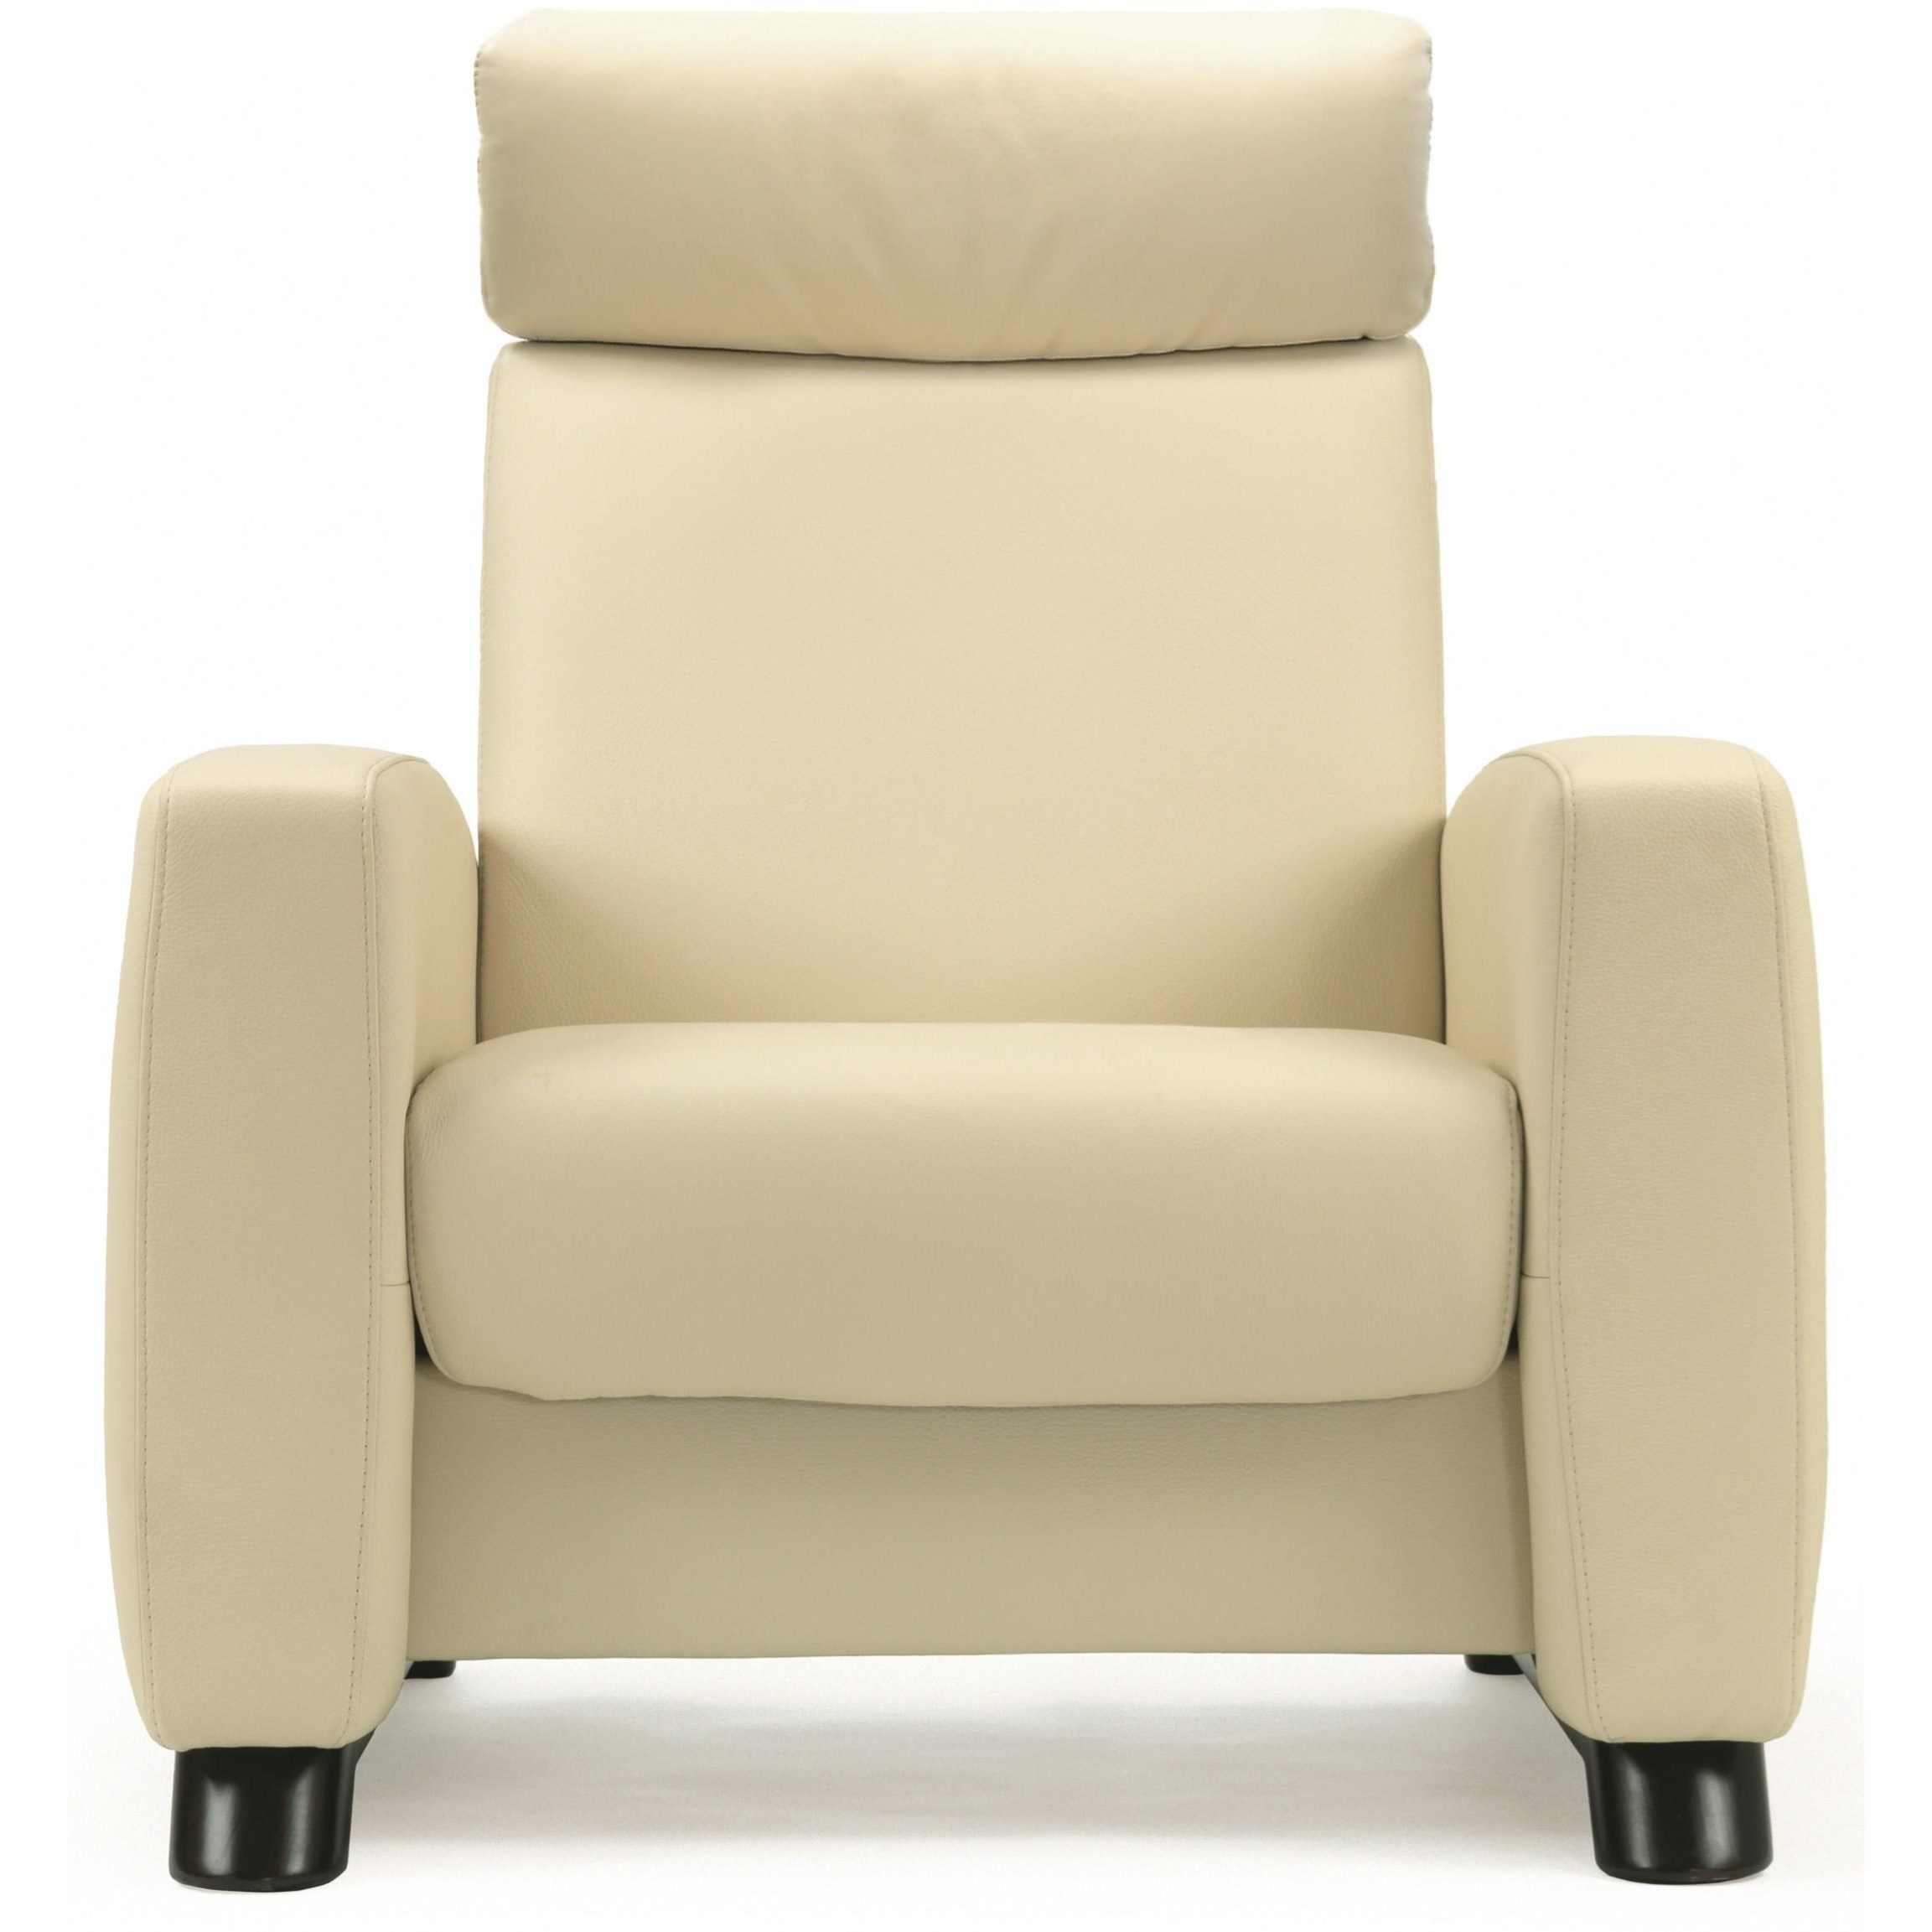 Arion 19 - A10 High-Back Reclining Chair by Stressless at Sprintz Furniture